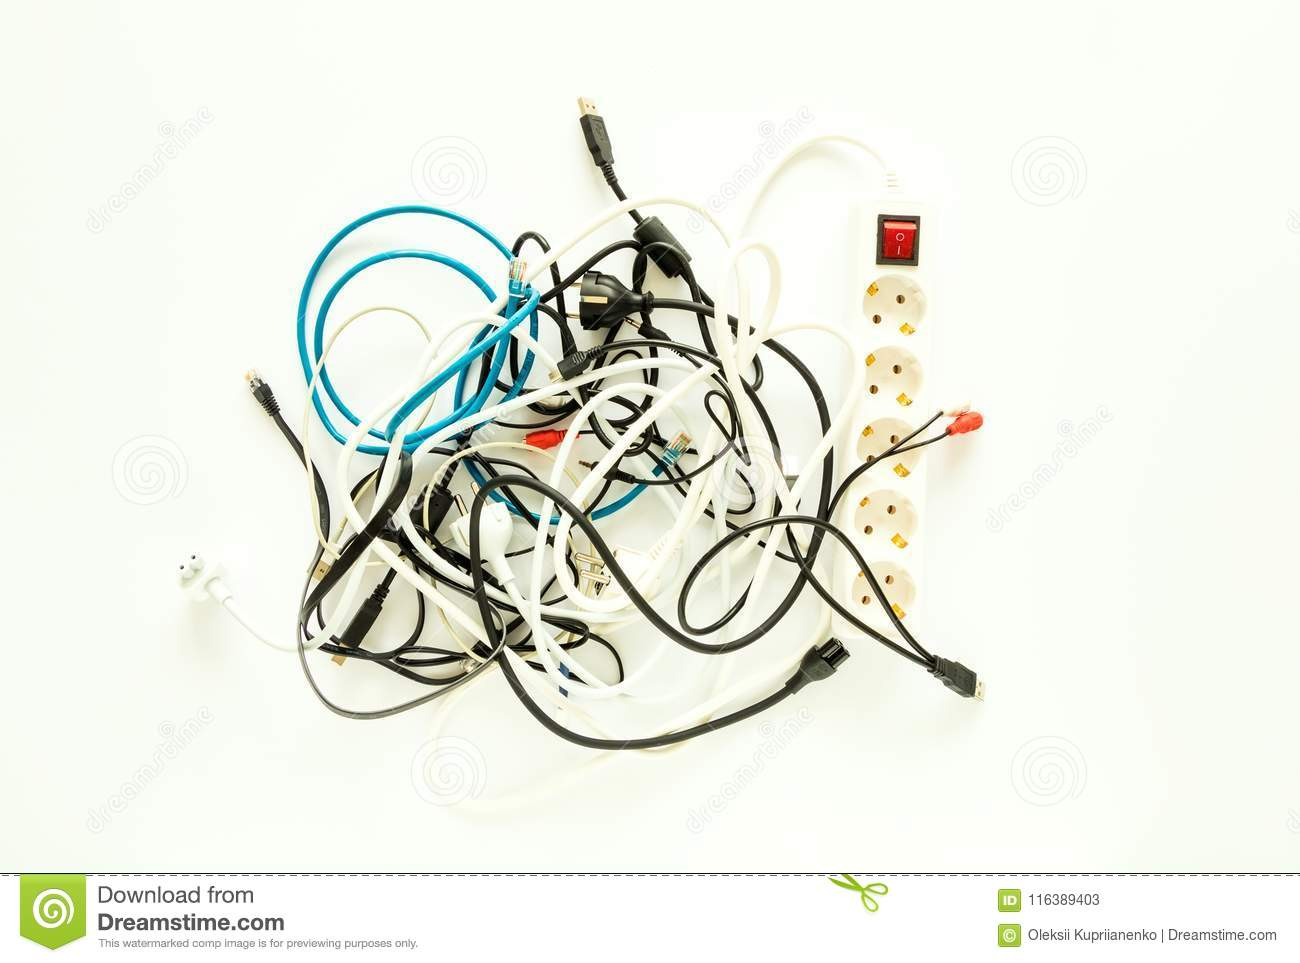 hight resolution of computer cables electronic wires extension and chargers in a messy heap home electronic chaos concept flat lay view from above